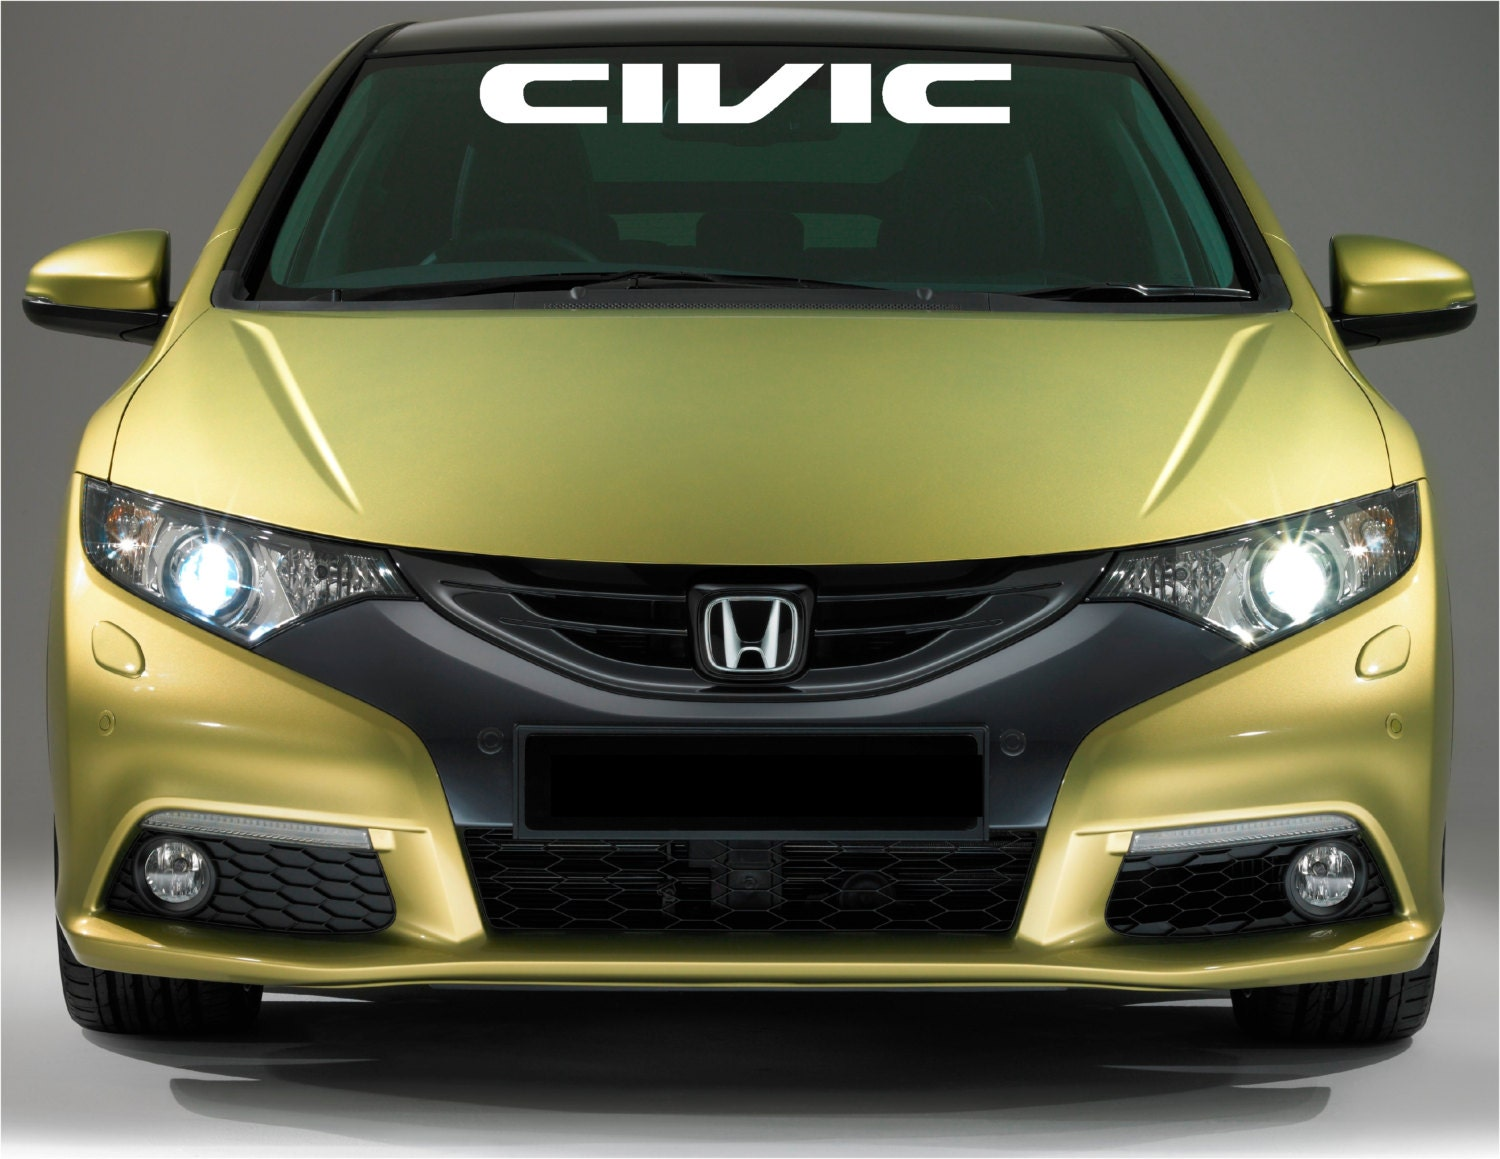 Honda civic logo windshield banner vinyl decals stickers for Honda civic windshield replacement cost